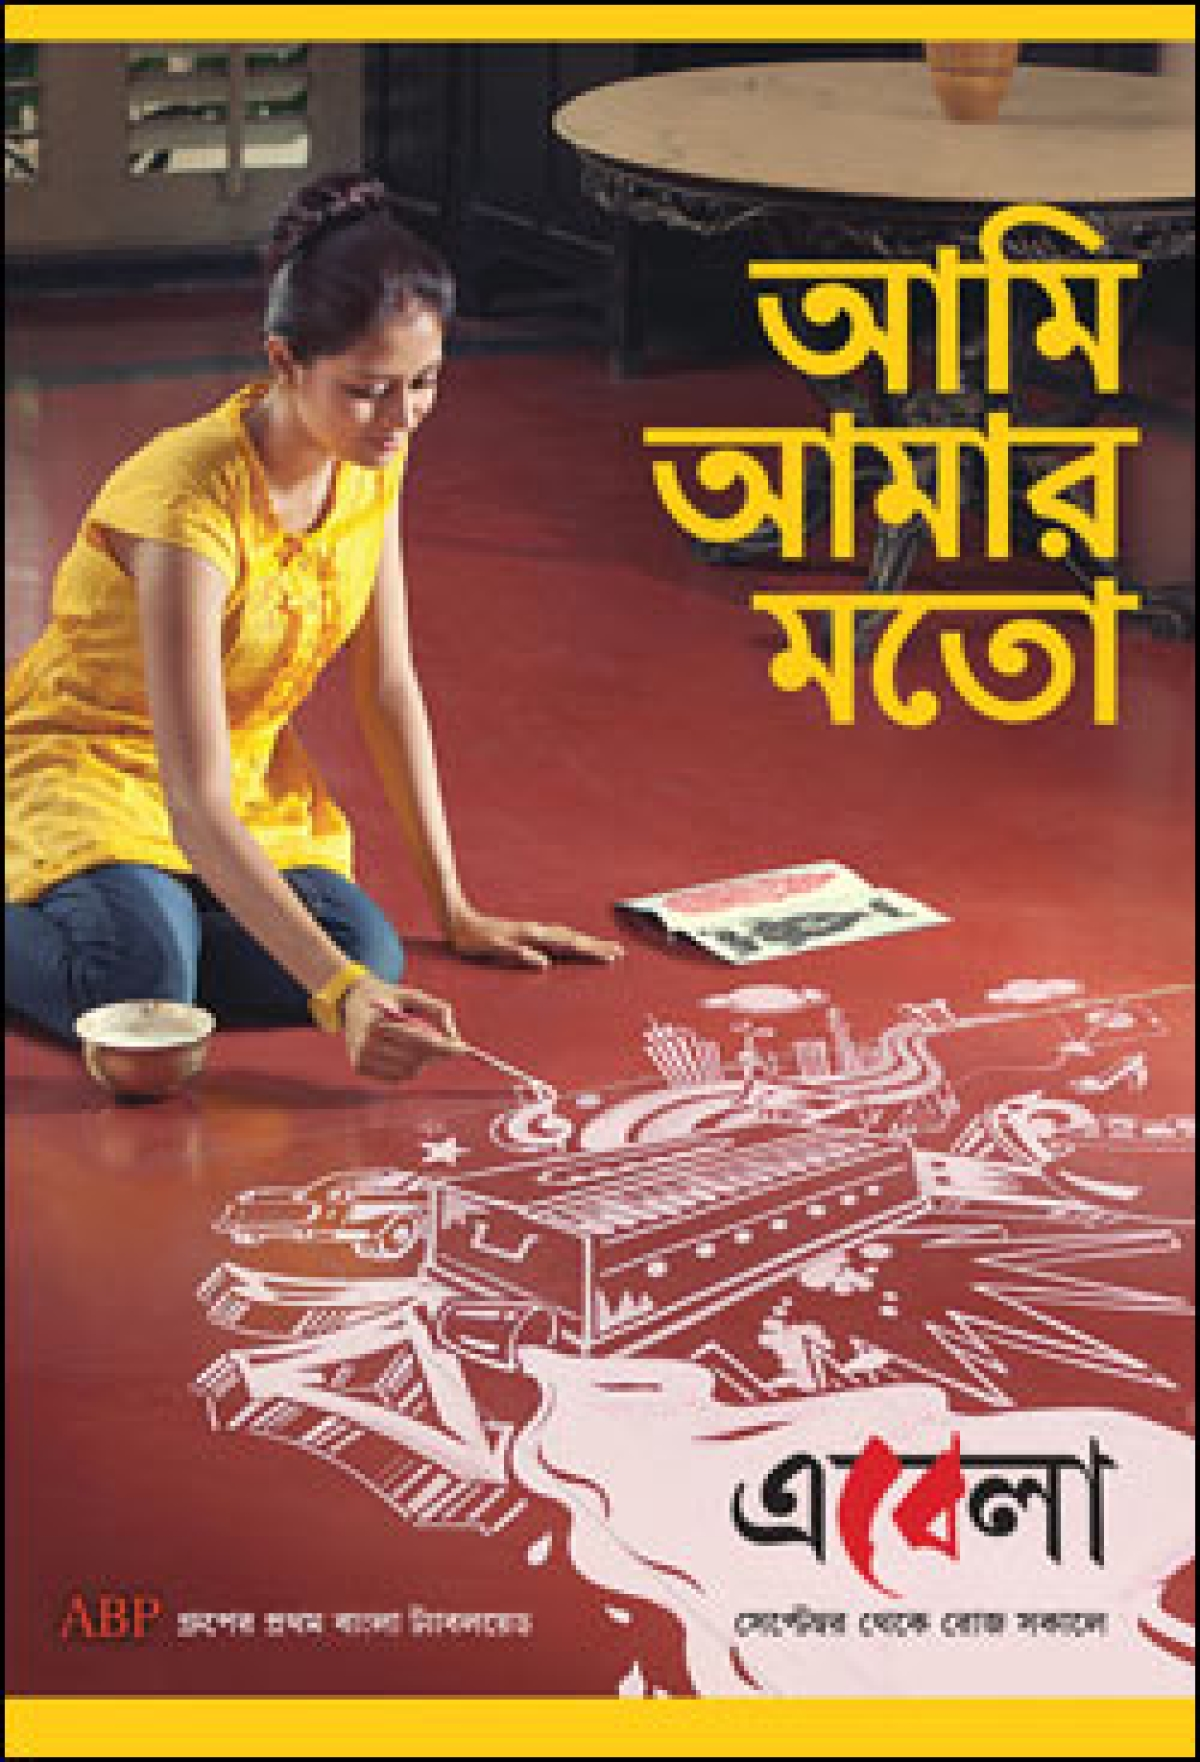 ABP Group launches Bengali tabloid, Ebela